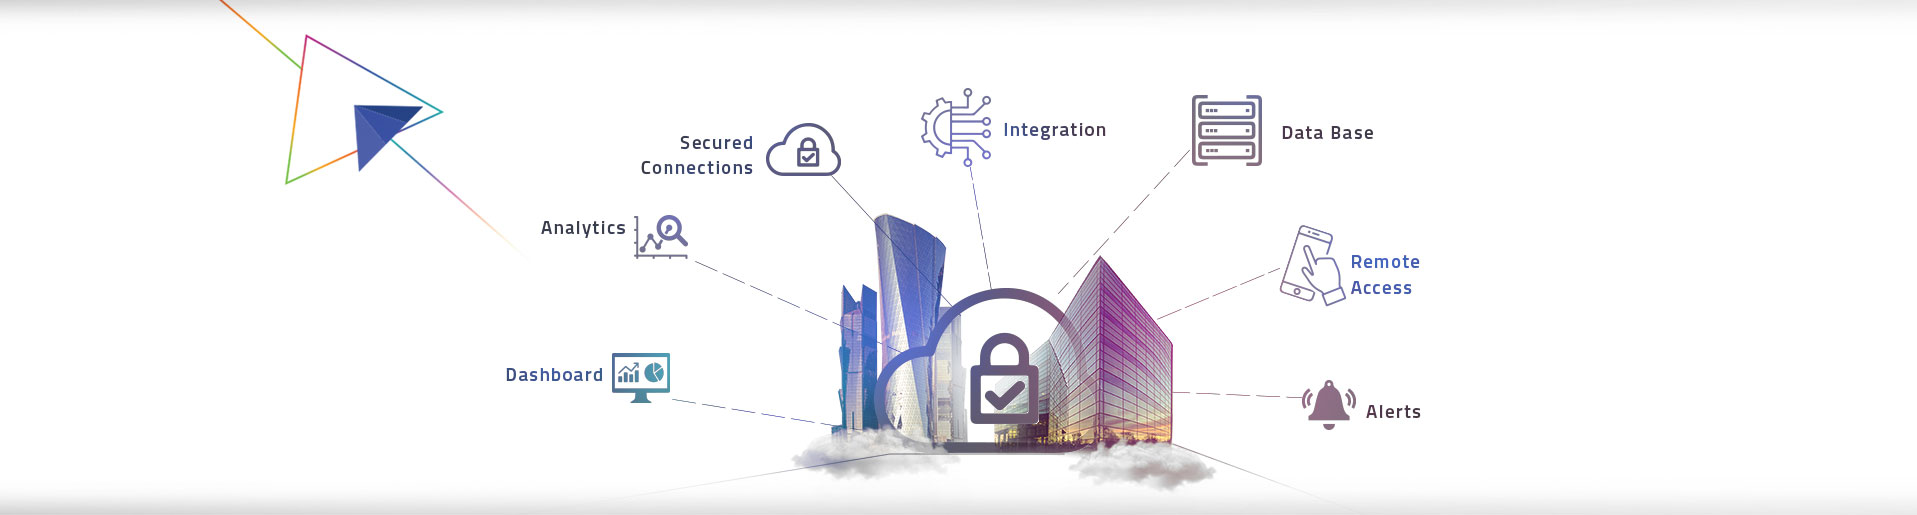 iot based building management system